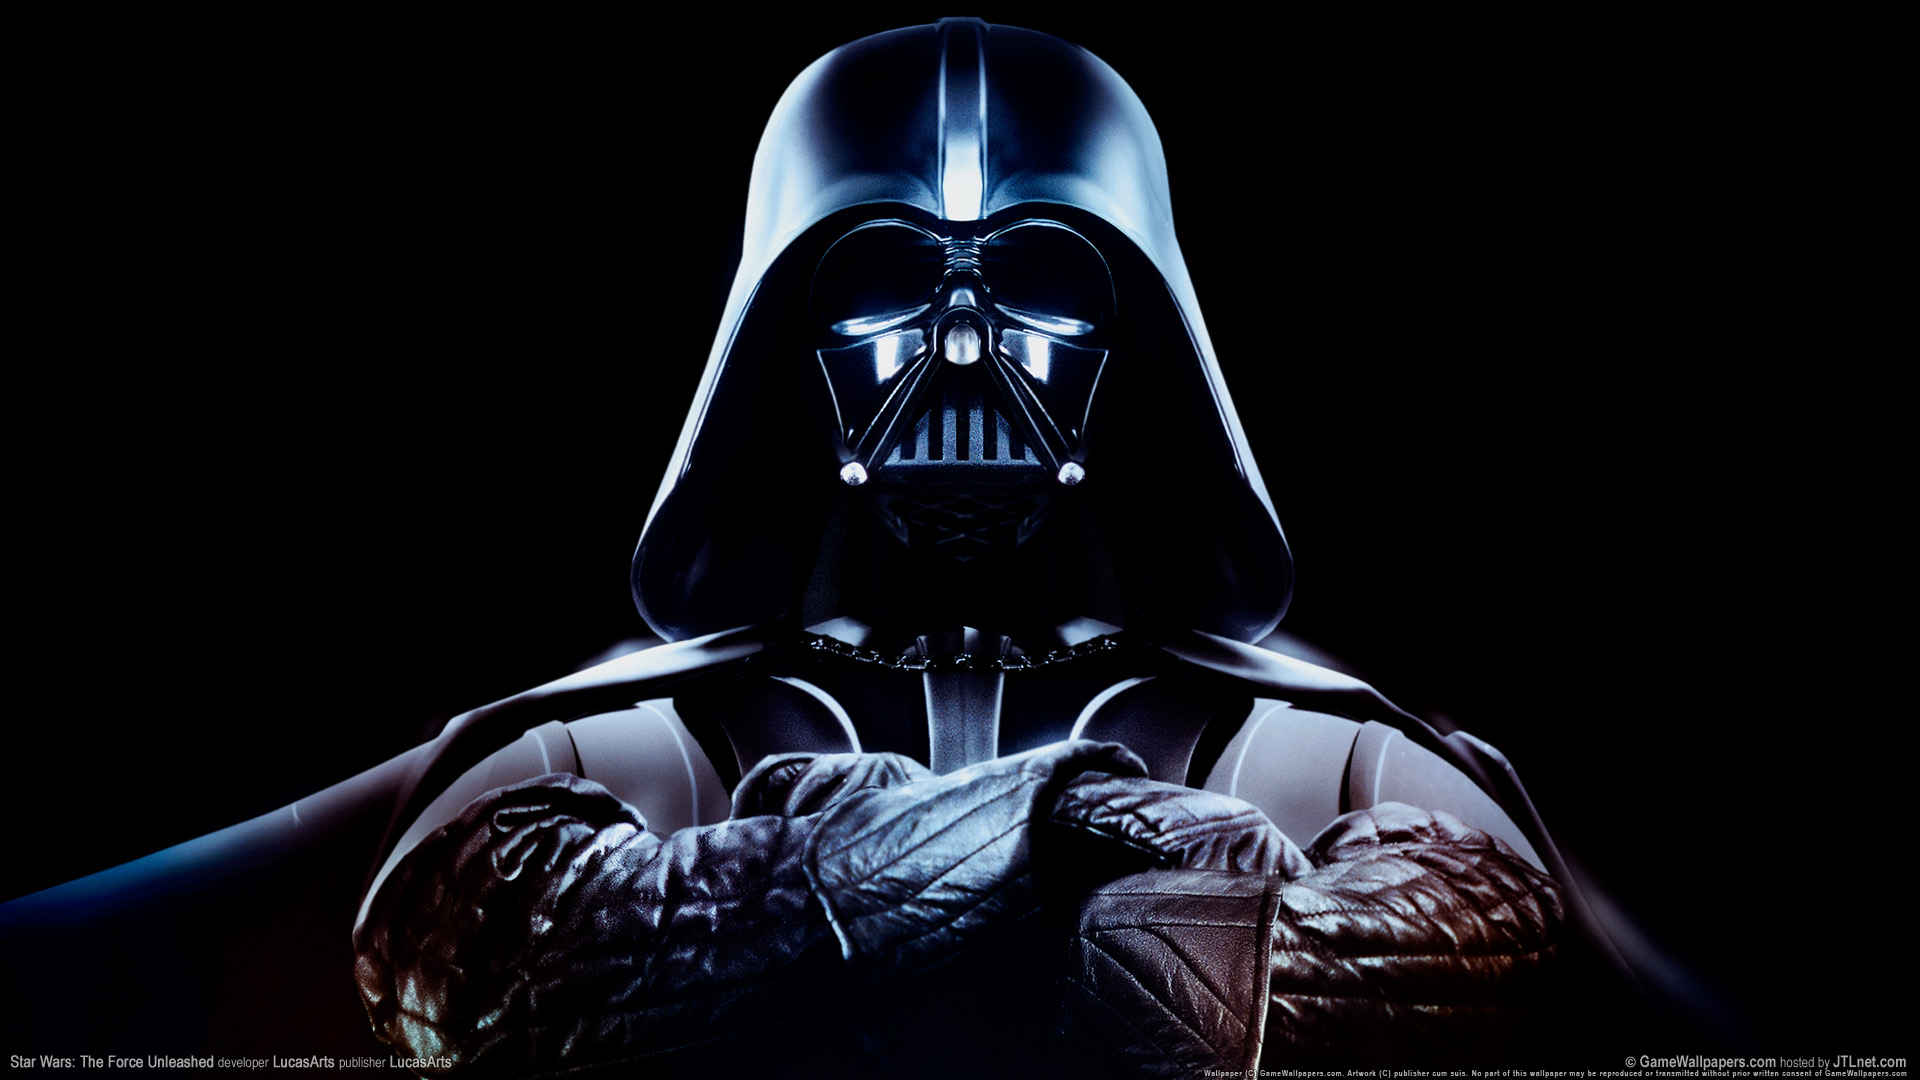 http://www.planetadisney.com.br/wp-content/uploads/2012/11/Classical-Wallpaper-Darth-Vader-star-wars-25852934-1920-1080.jpg